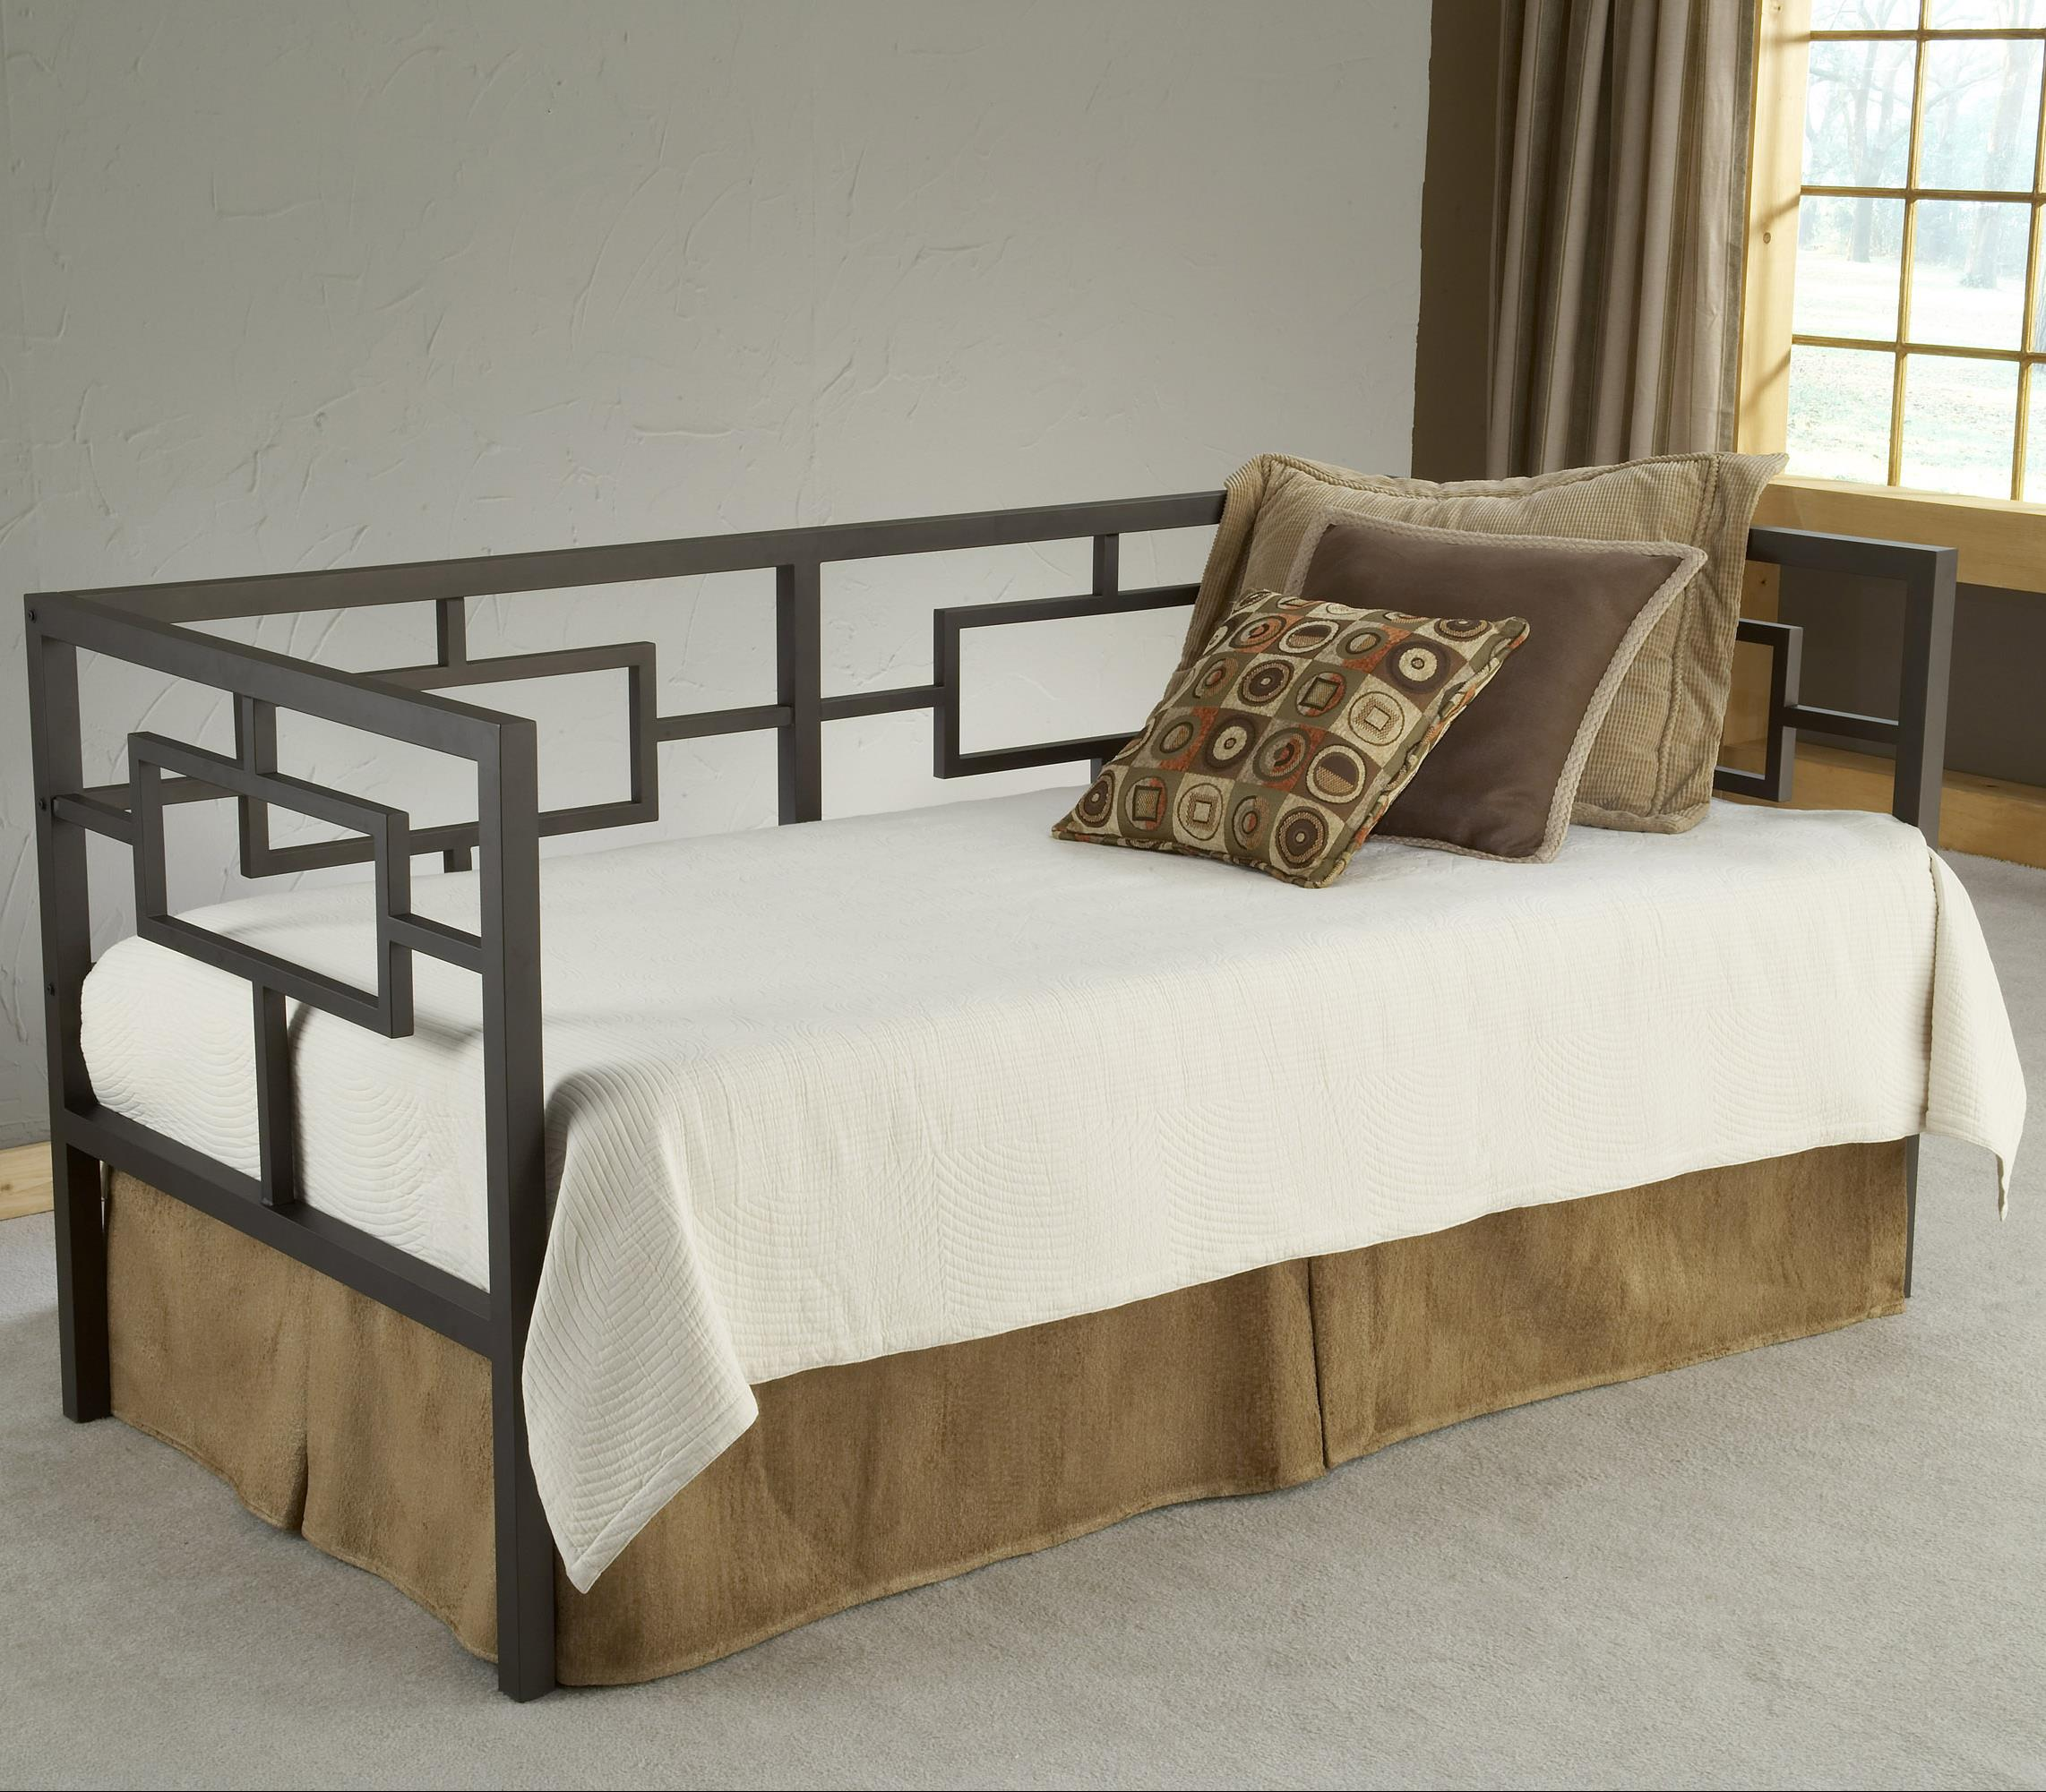 Hillsdale Daybeds Daybed with Suspension Deck and Trundle - Item Number: 1516DBLHTR